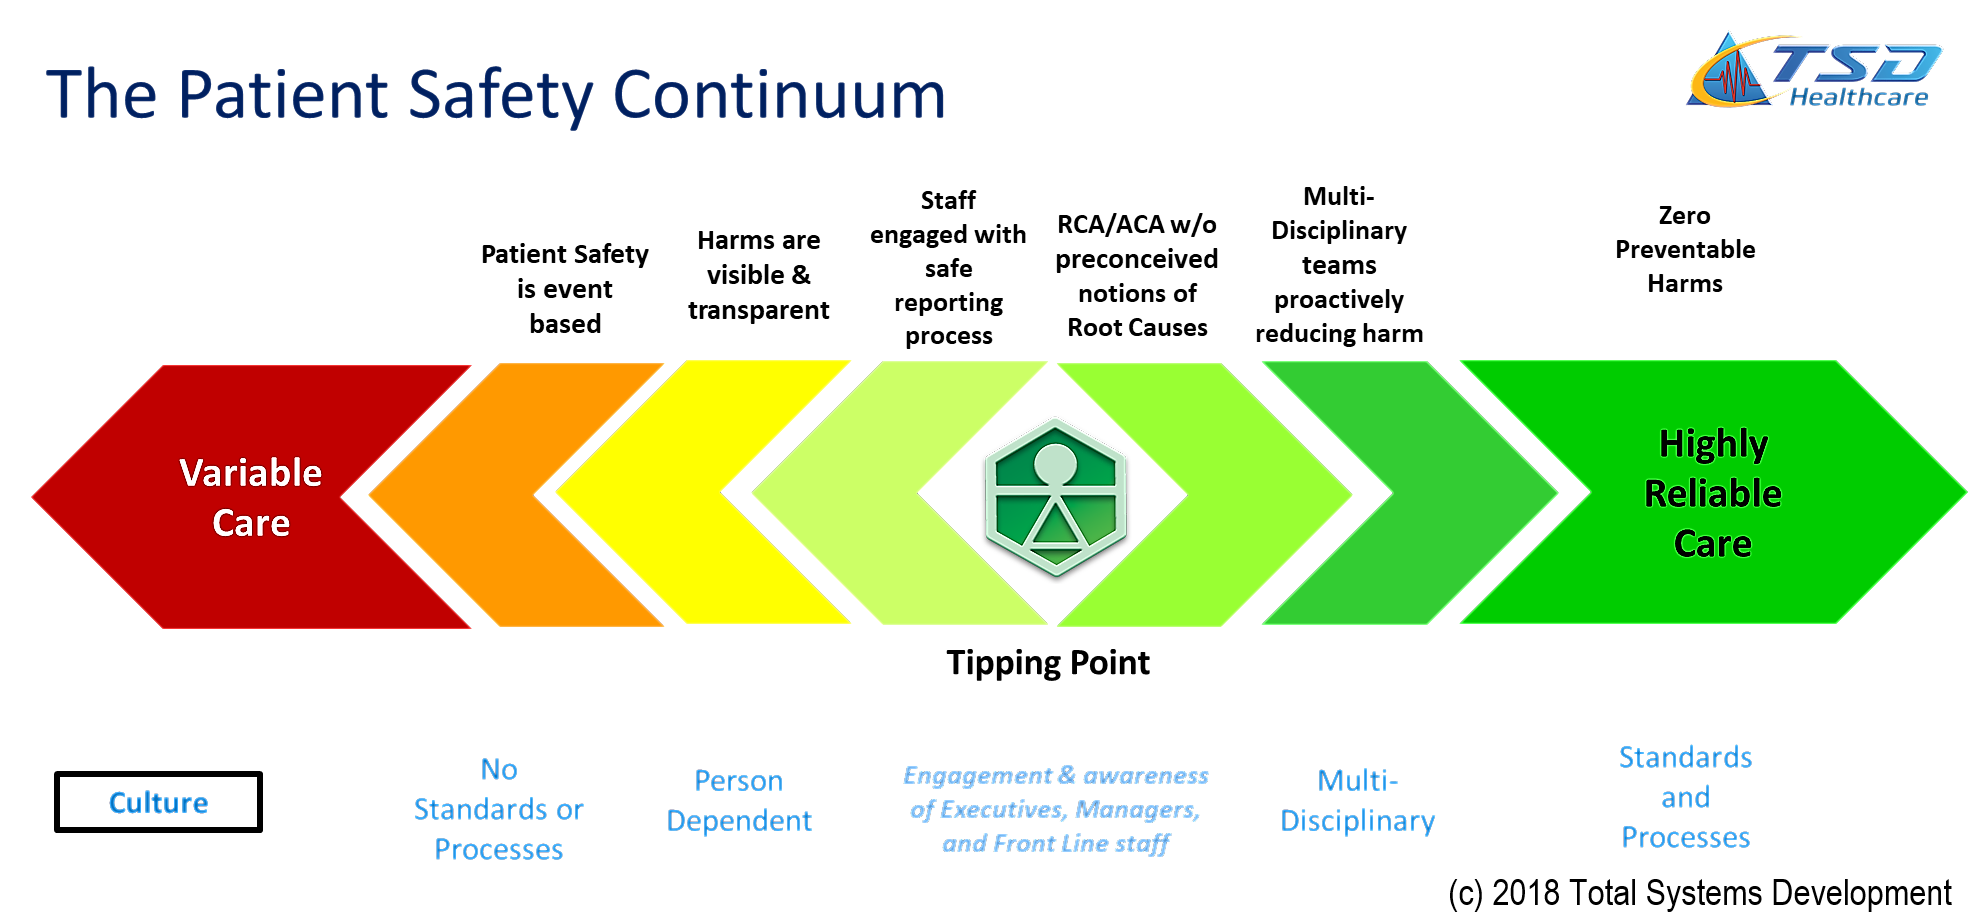 The Patient Safety Continuum